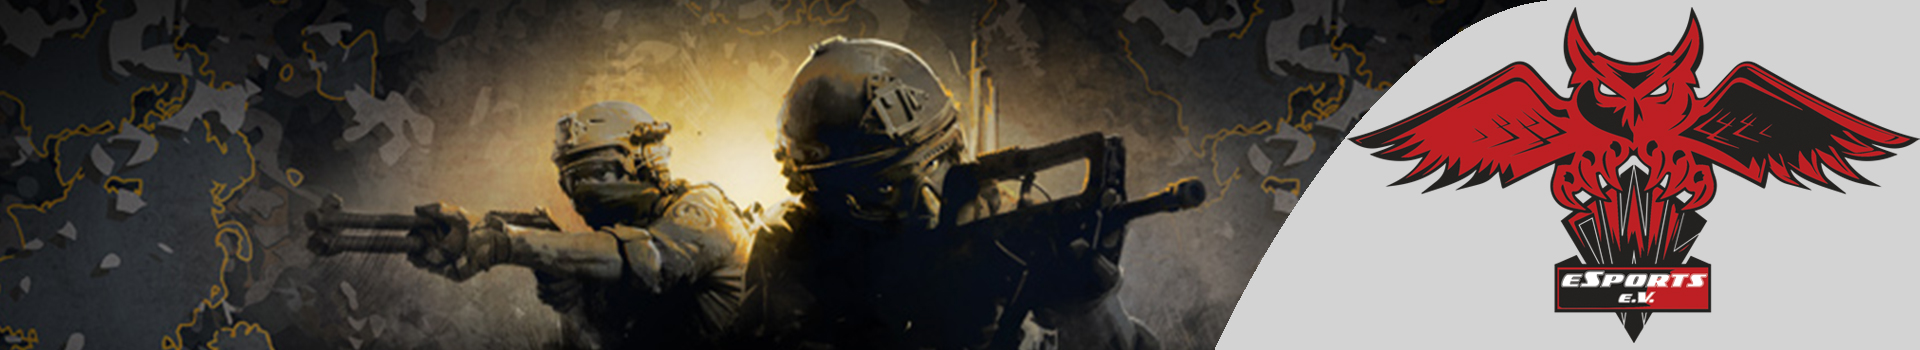 Counter Strike - Global Offensive